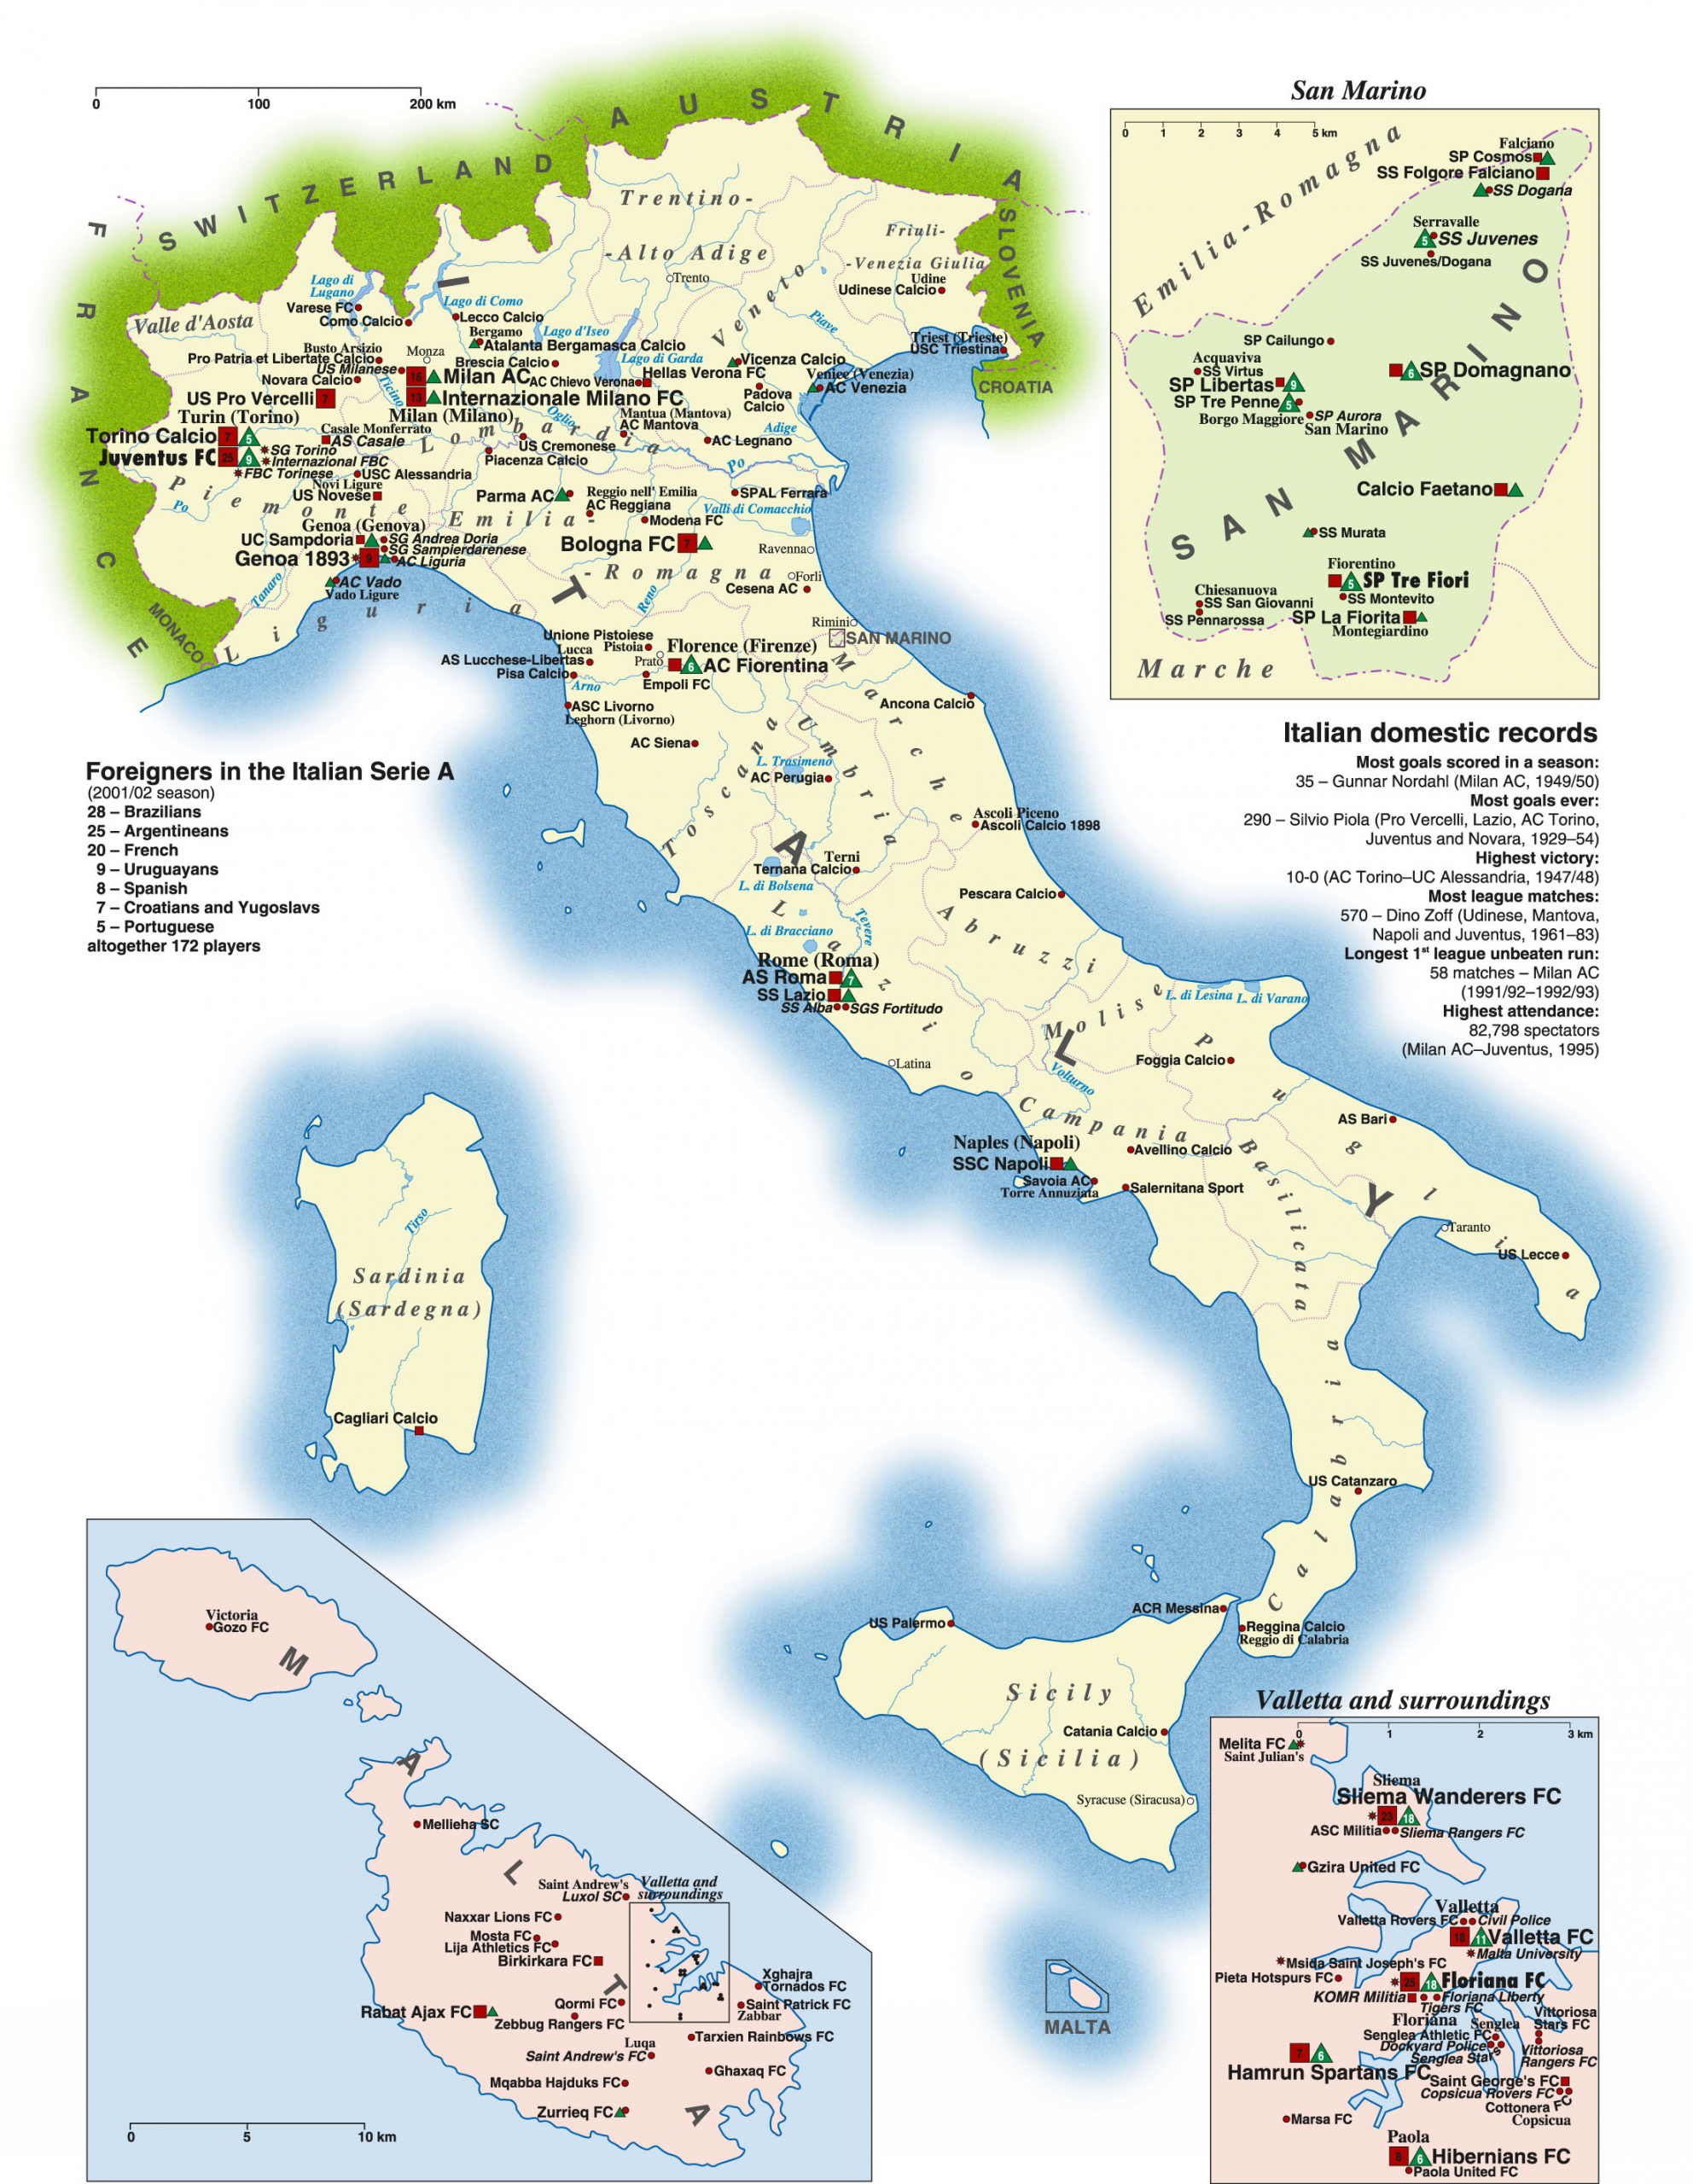 https://picchibrothers.org/wp-content/uploads/2021/02/italy-scaled.jpg